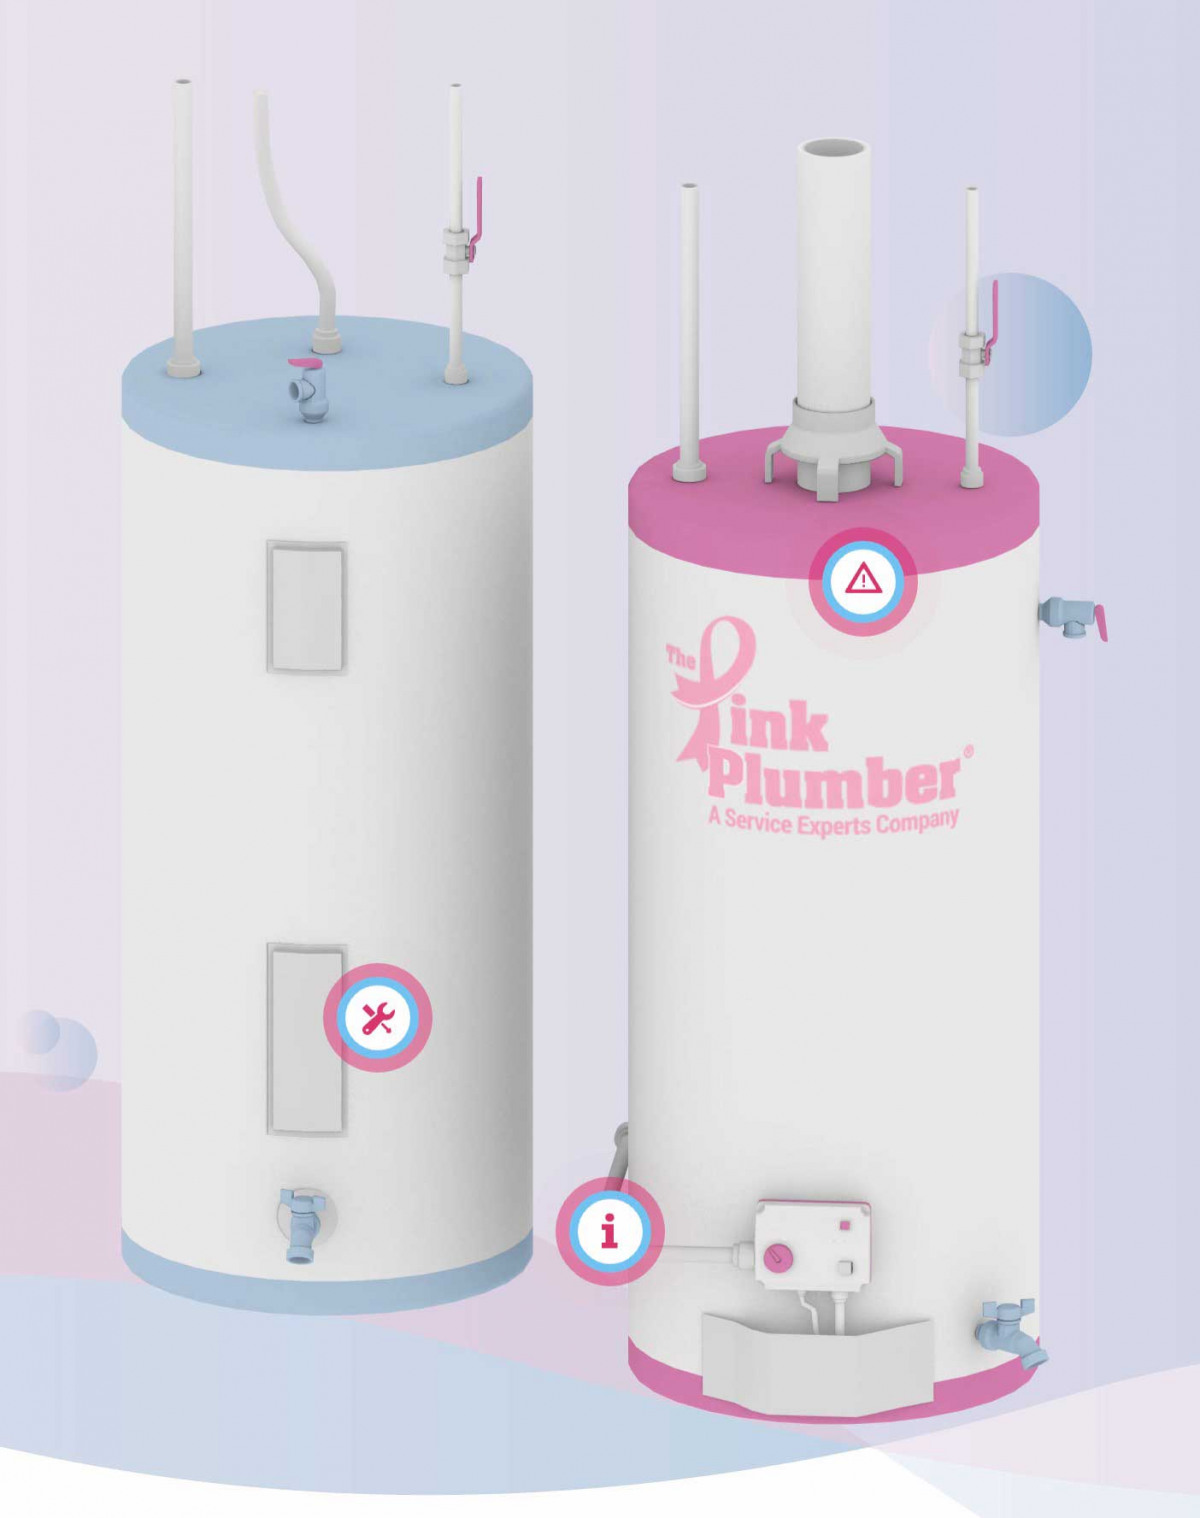 Image of website for The Pink Plumber